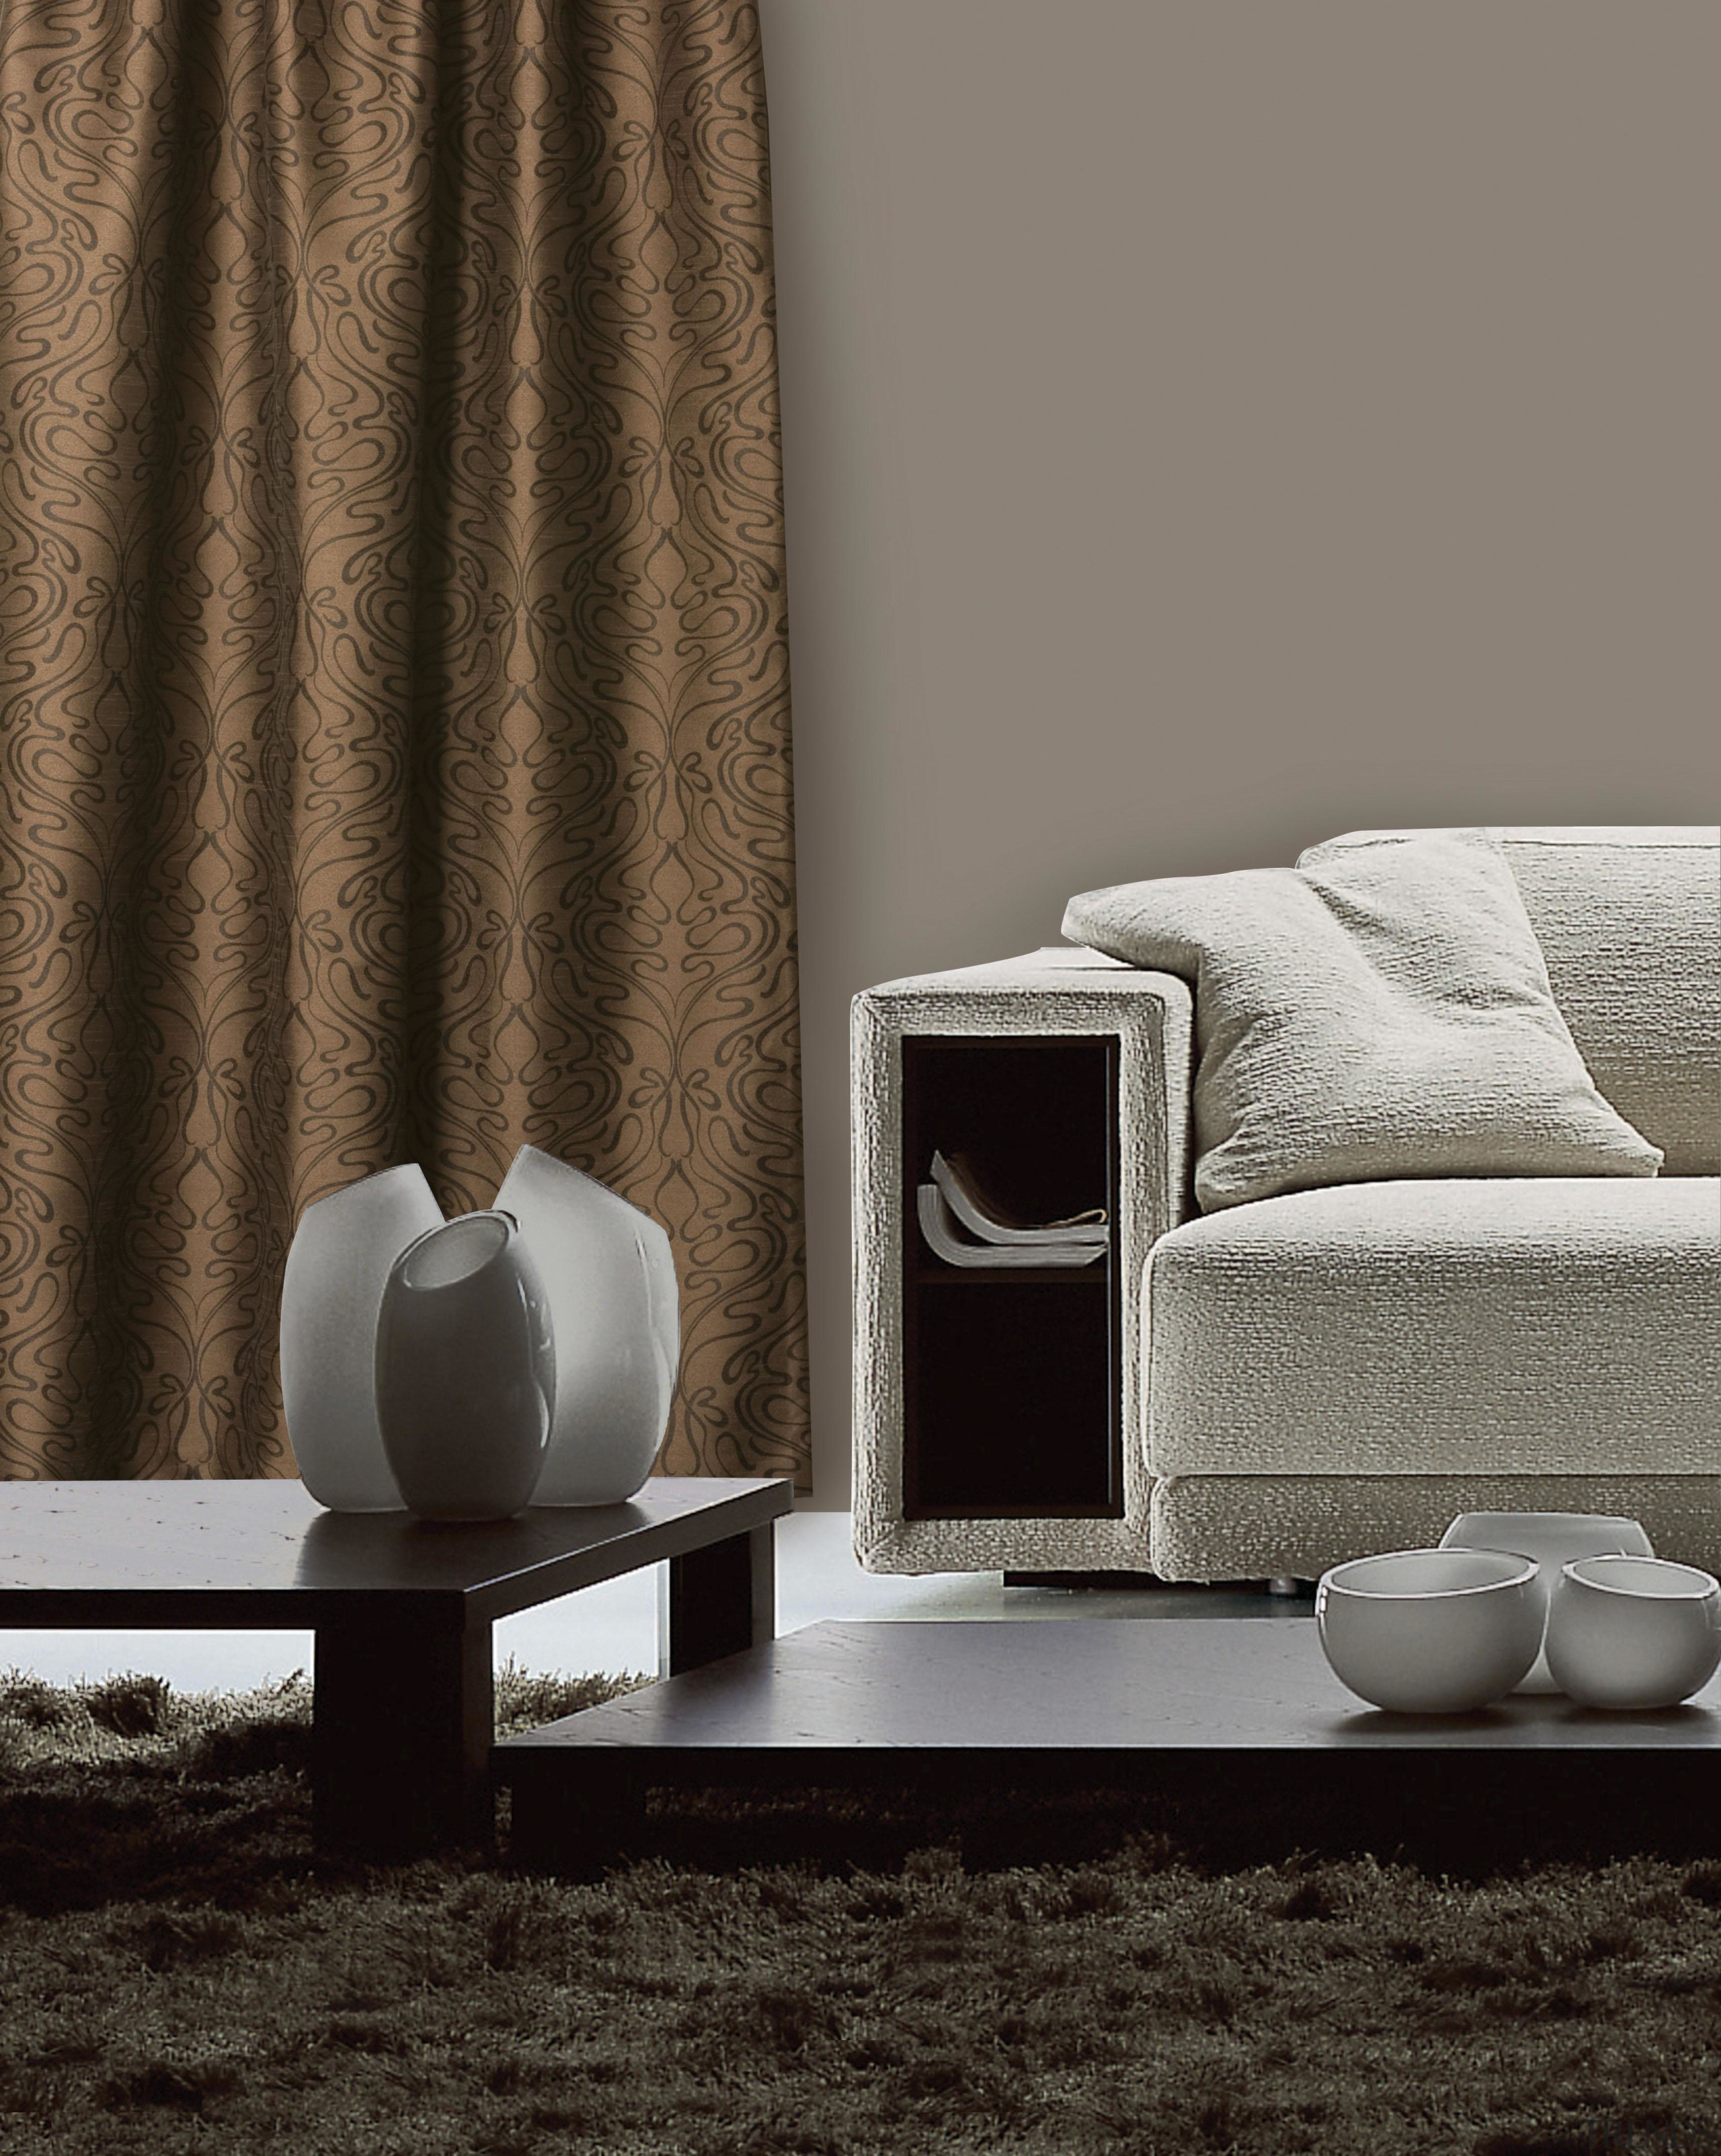 Iterate - couch | curtain | floor | couch, curtain, floor, flooring, furniture, interior design, living room, still life photography, table, wall, window, black, gray